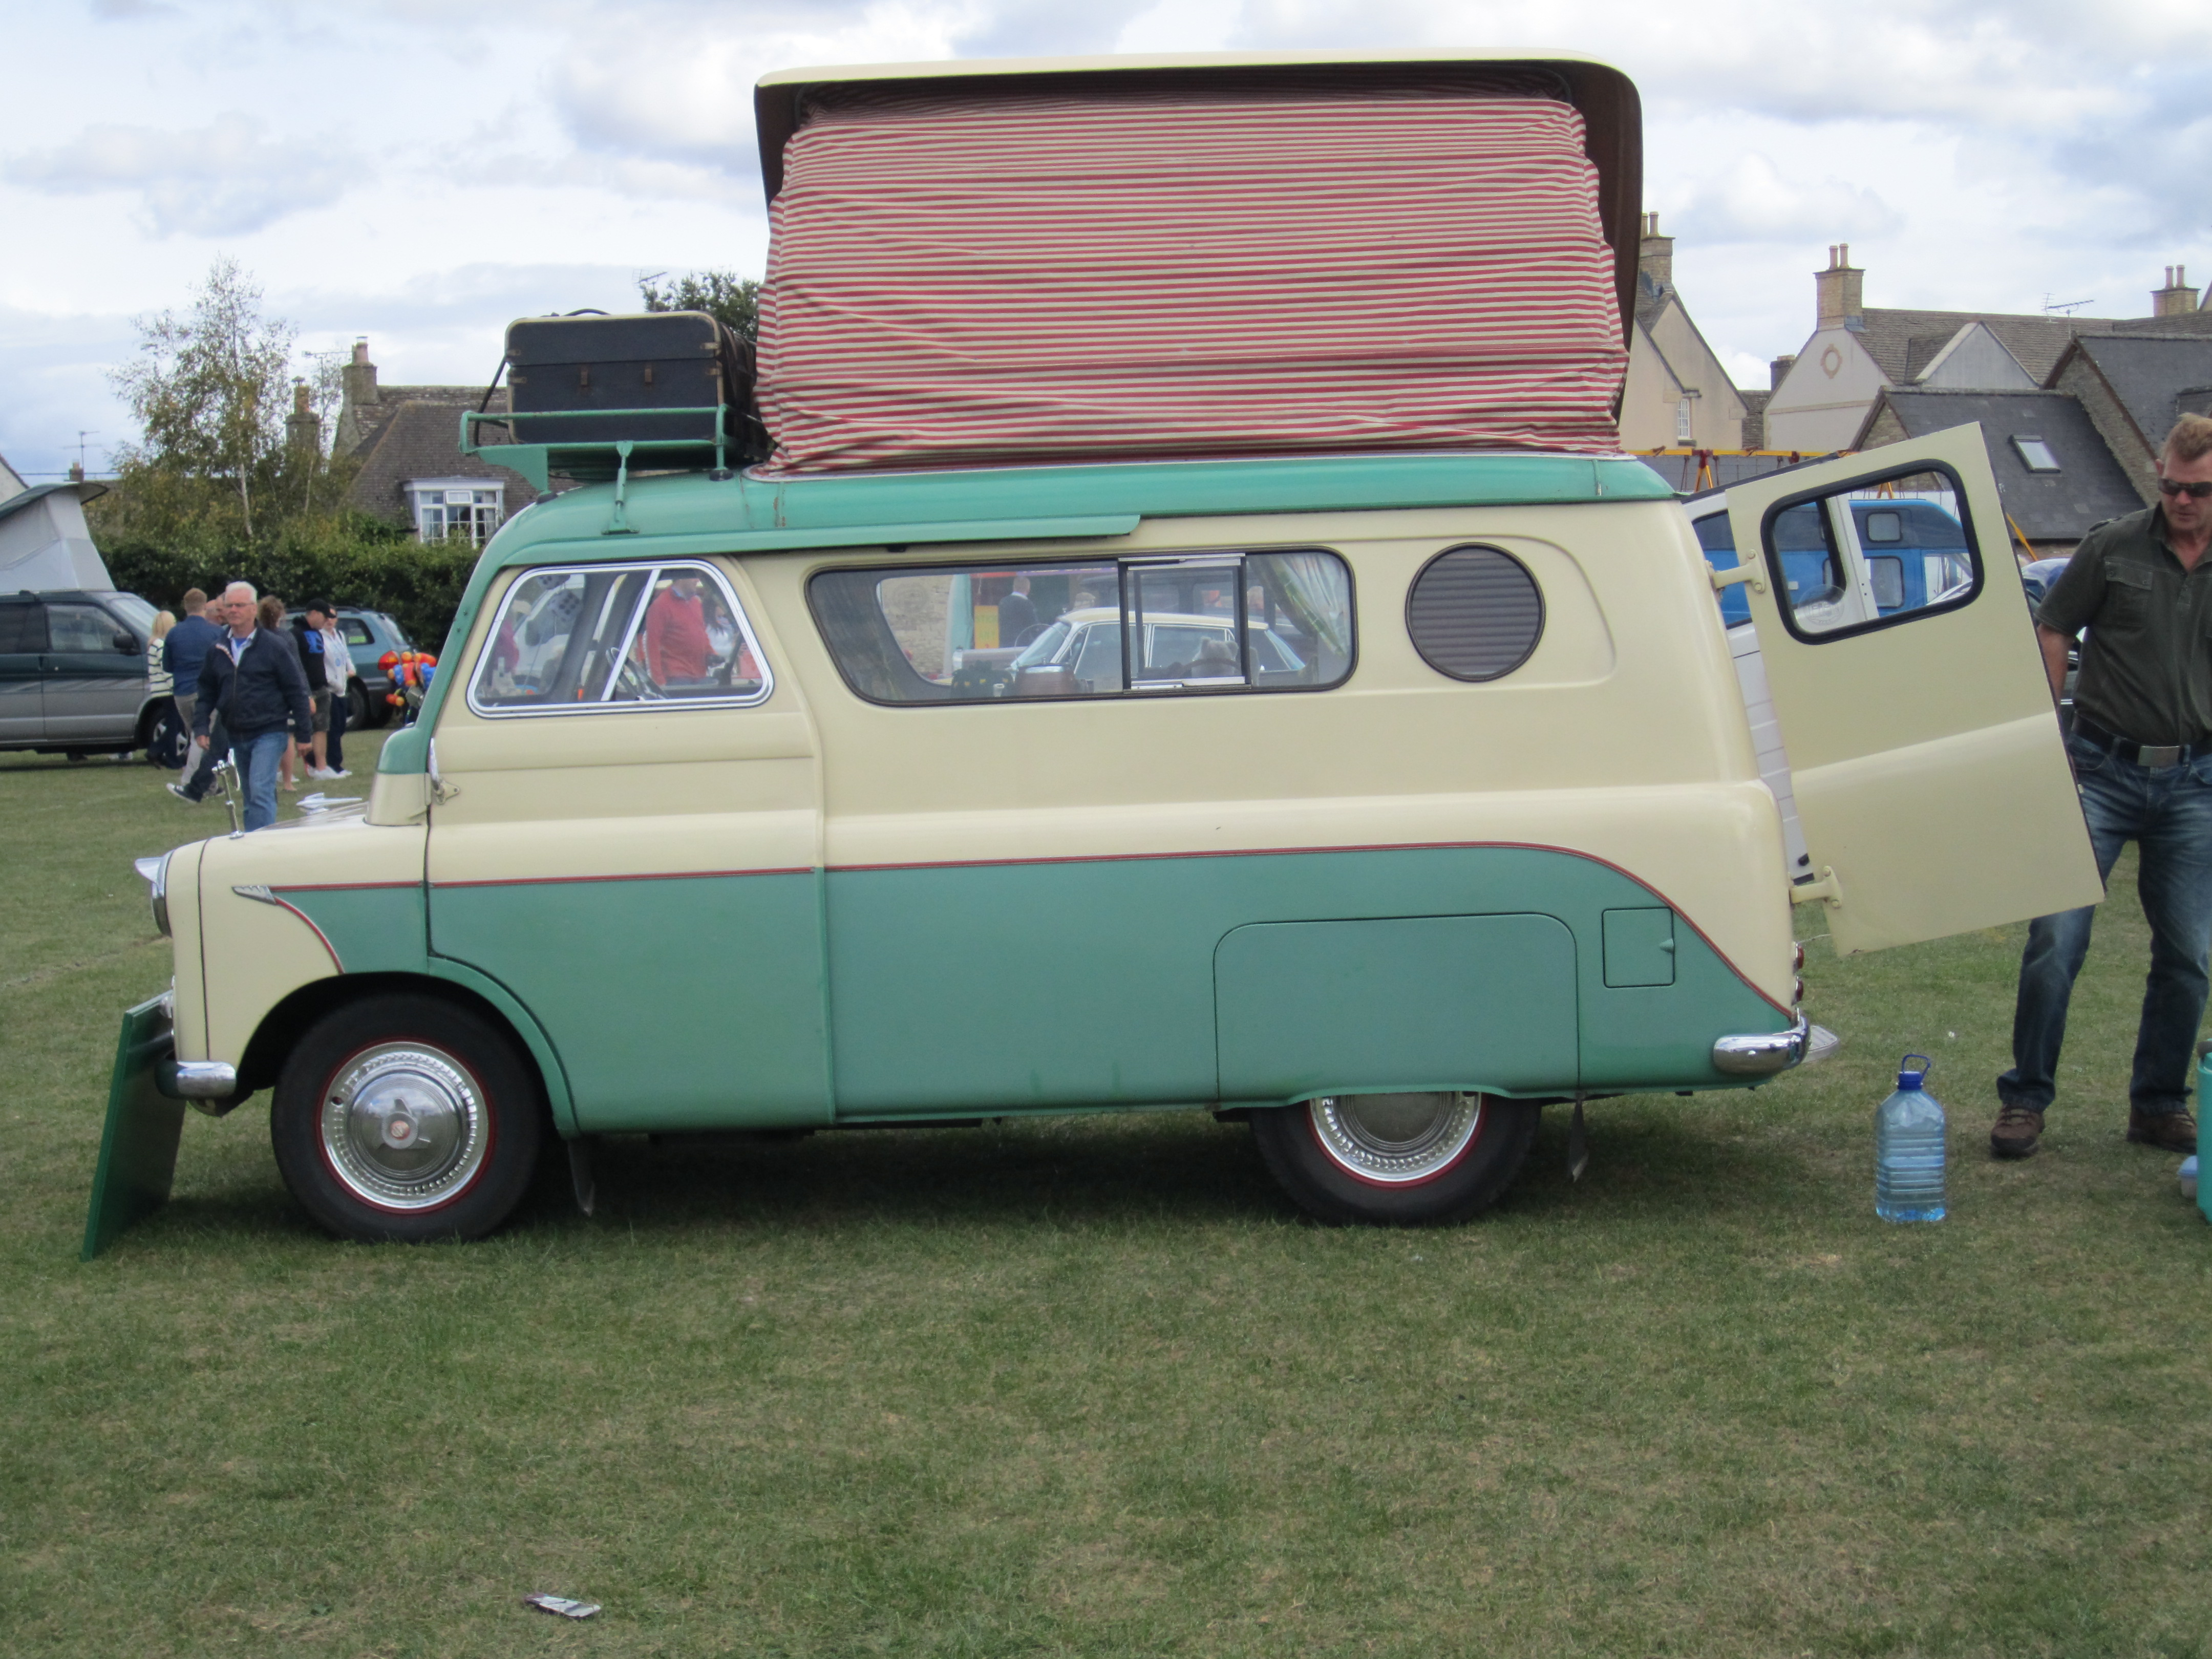 Betsy the Campervan